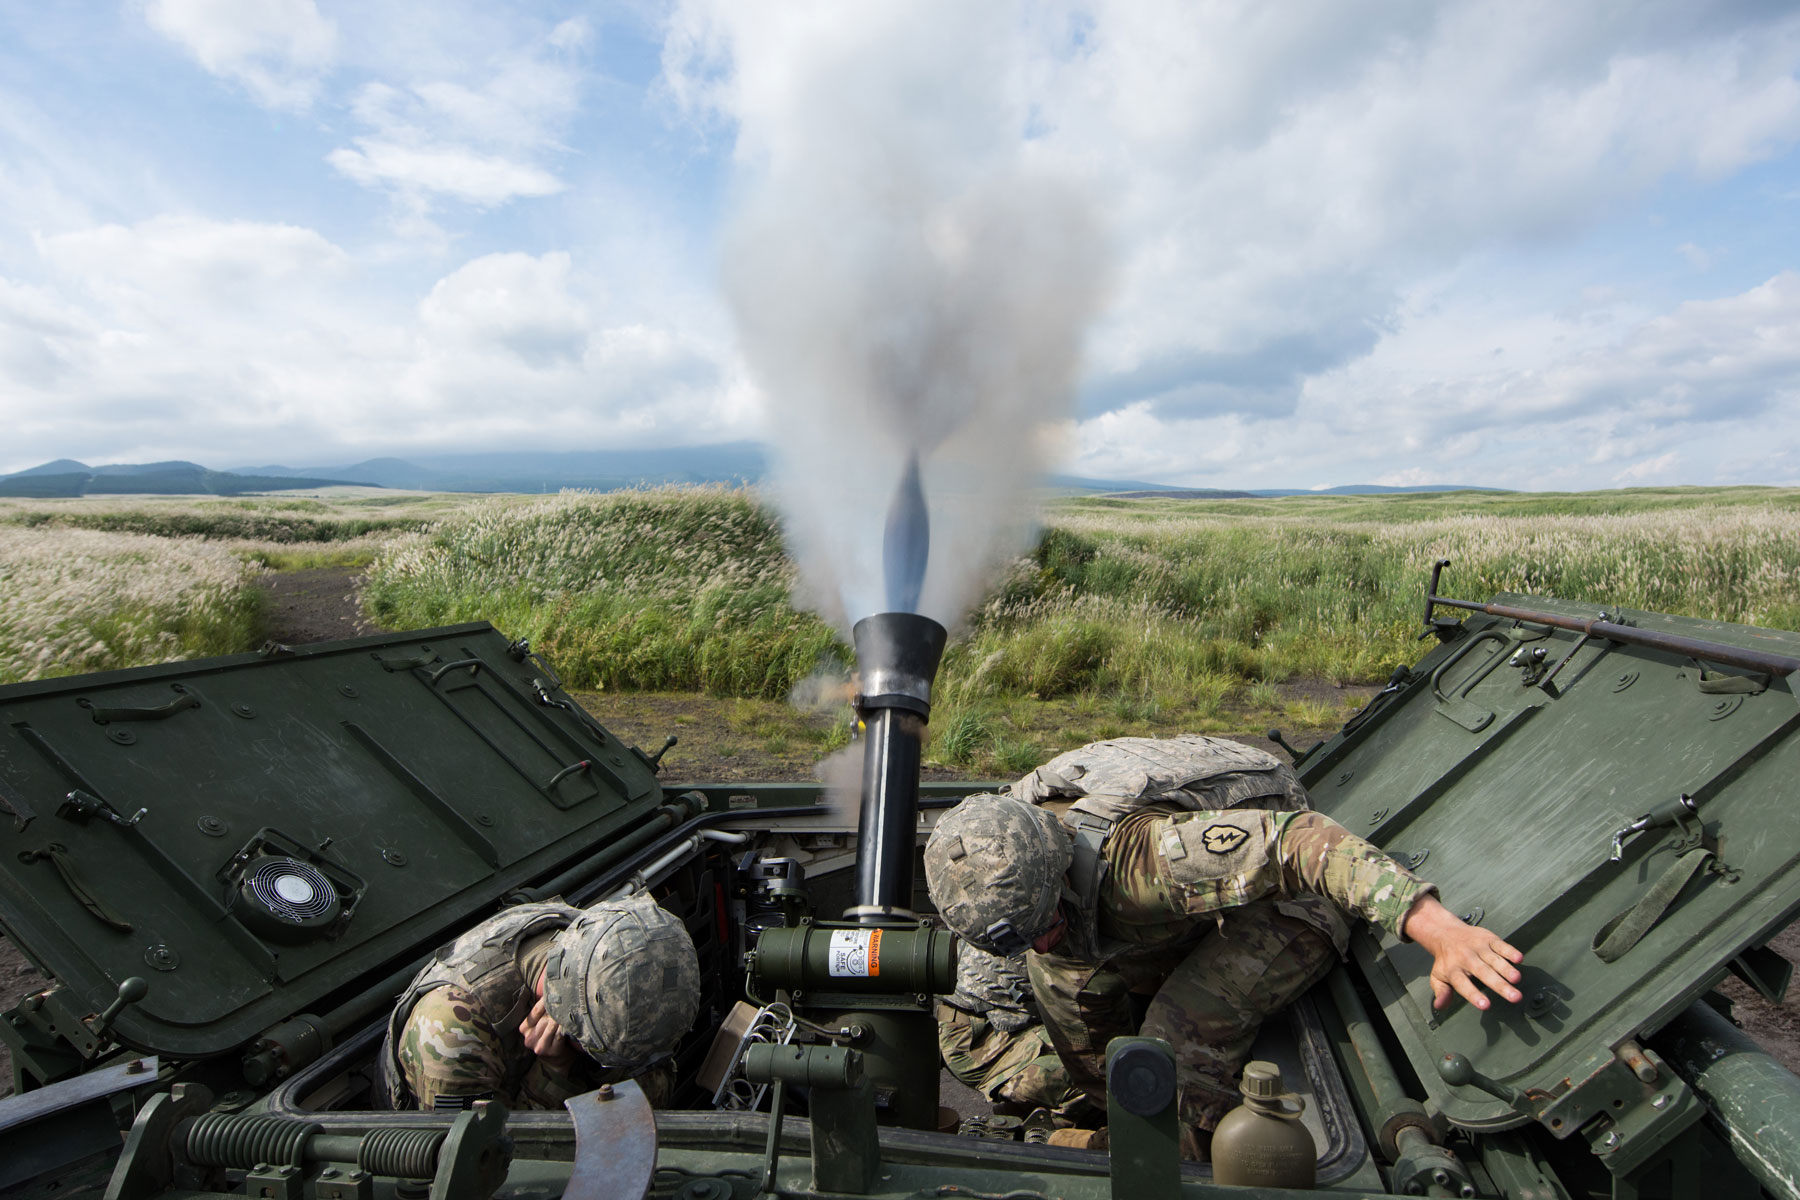 U S Army 120mm Mortar : Rms l mm mortar system on a m carrier usa